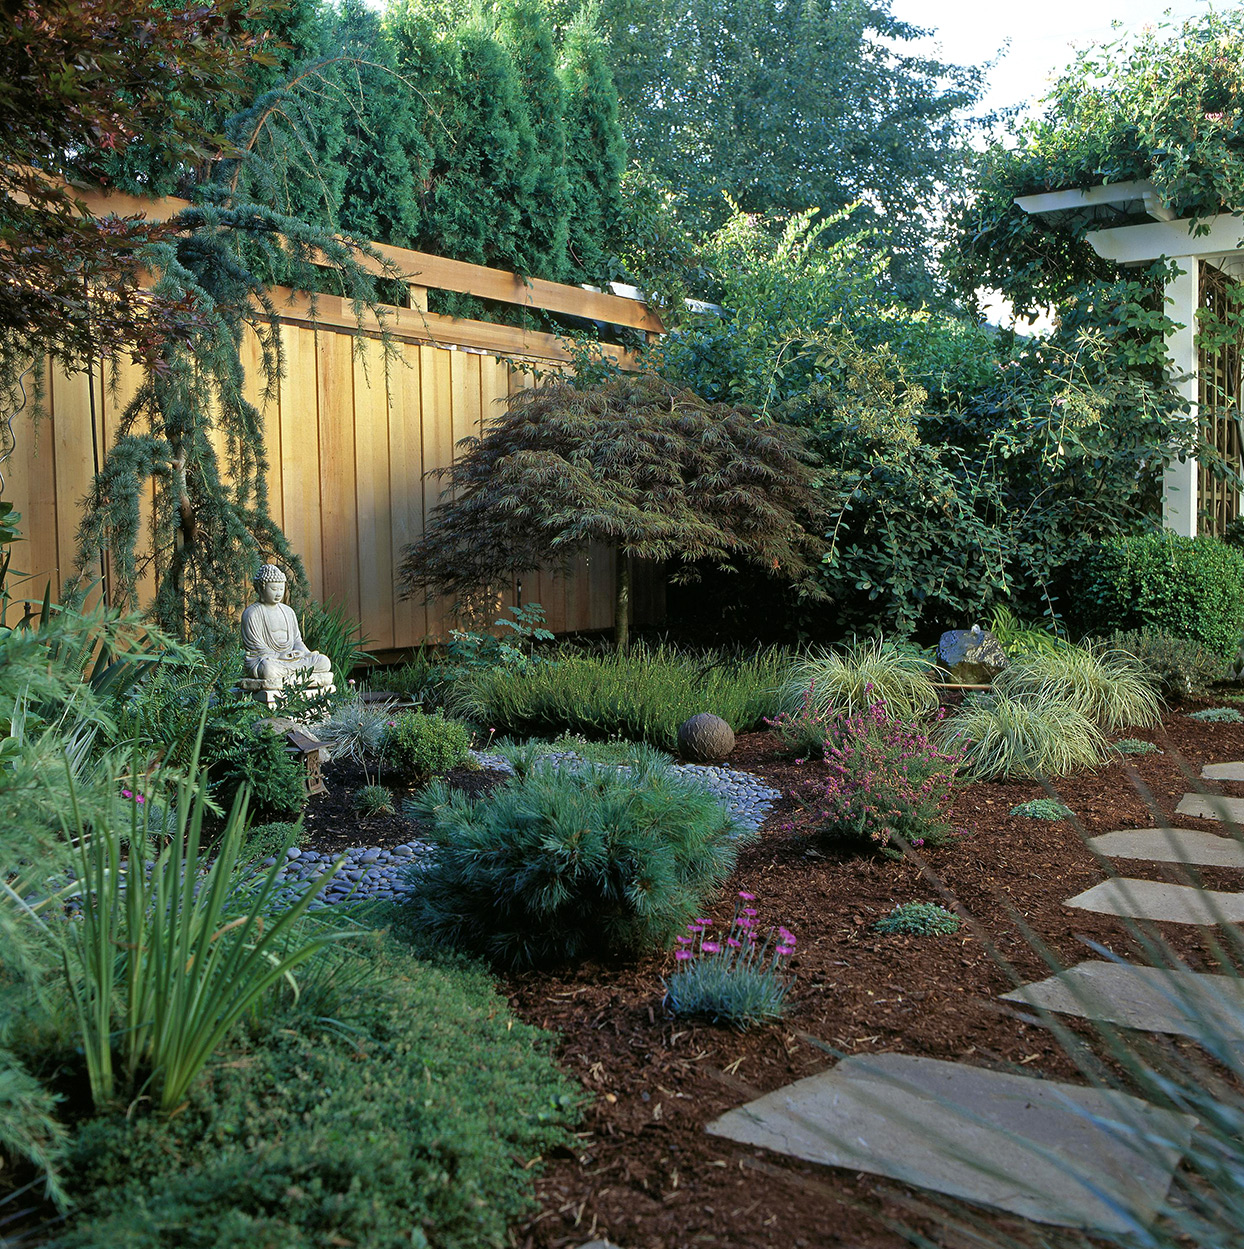 landscaped yard with ornamental grasses, buddha, and wooden fence